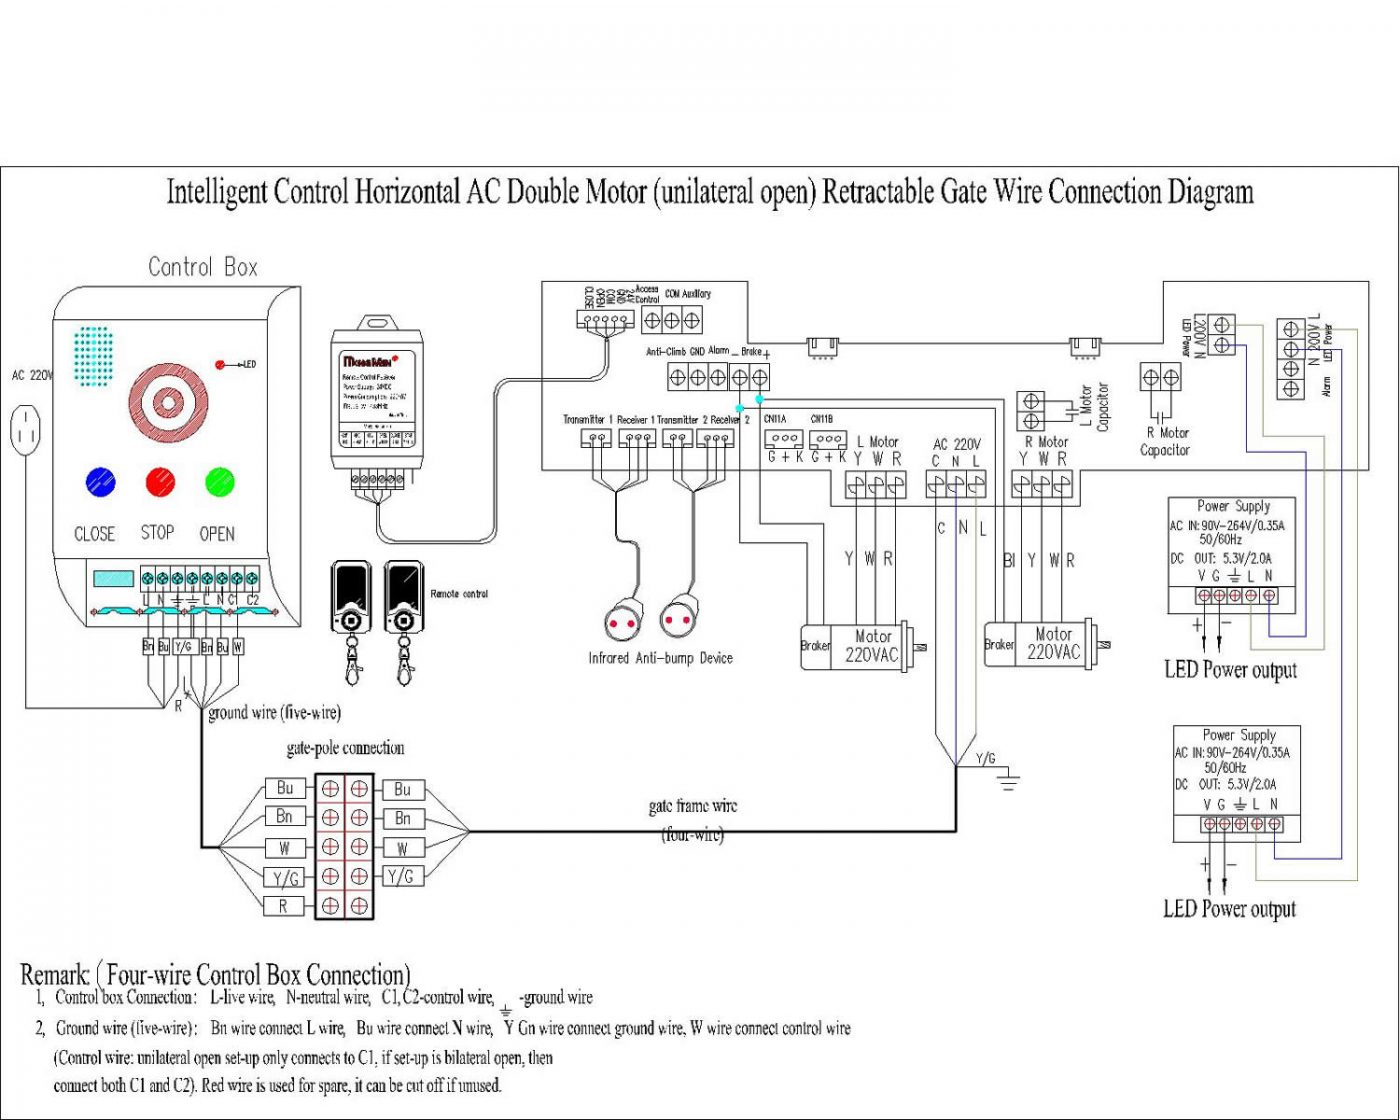 Generator Wiring Diagram Pdf from wholefoodsonabudget.com